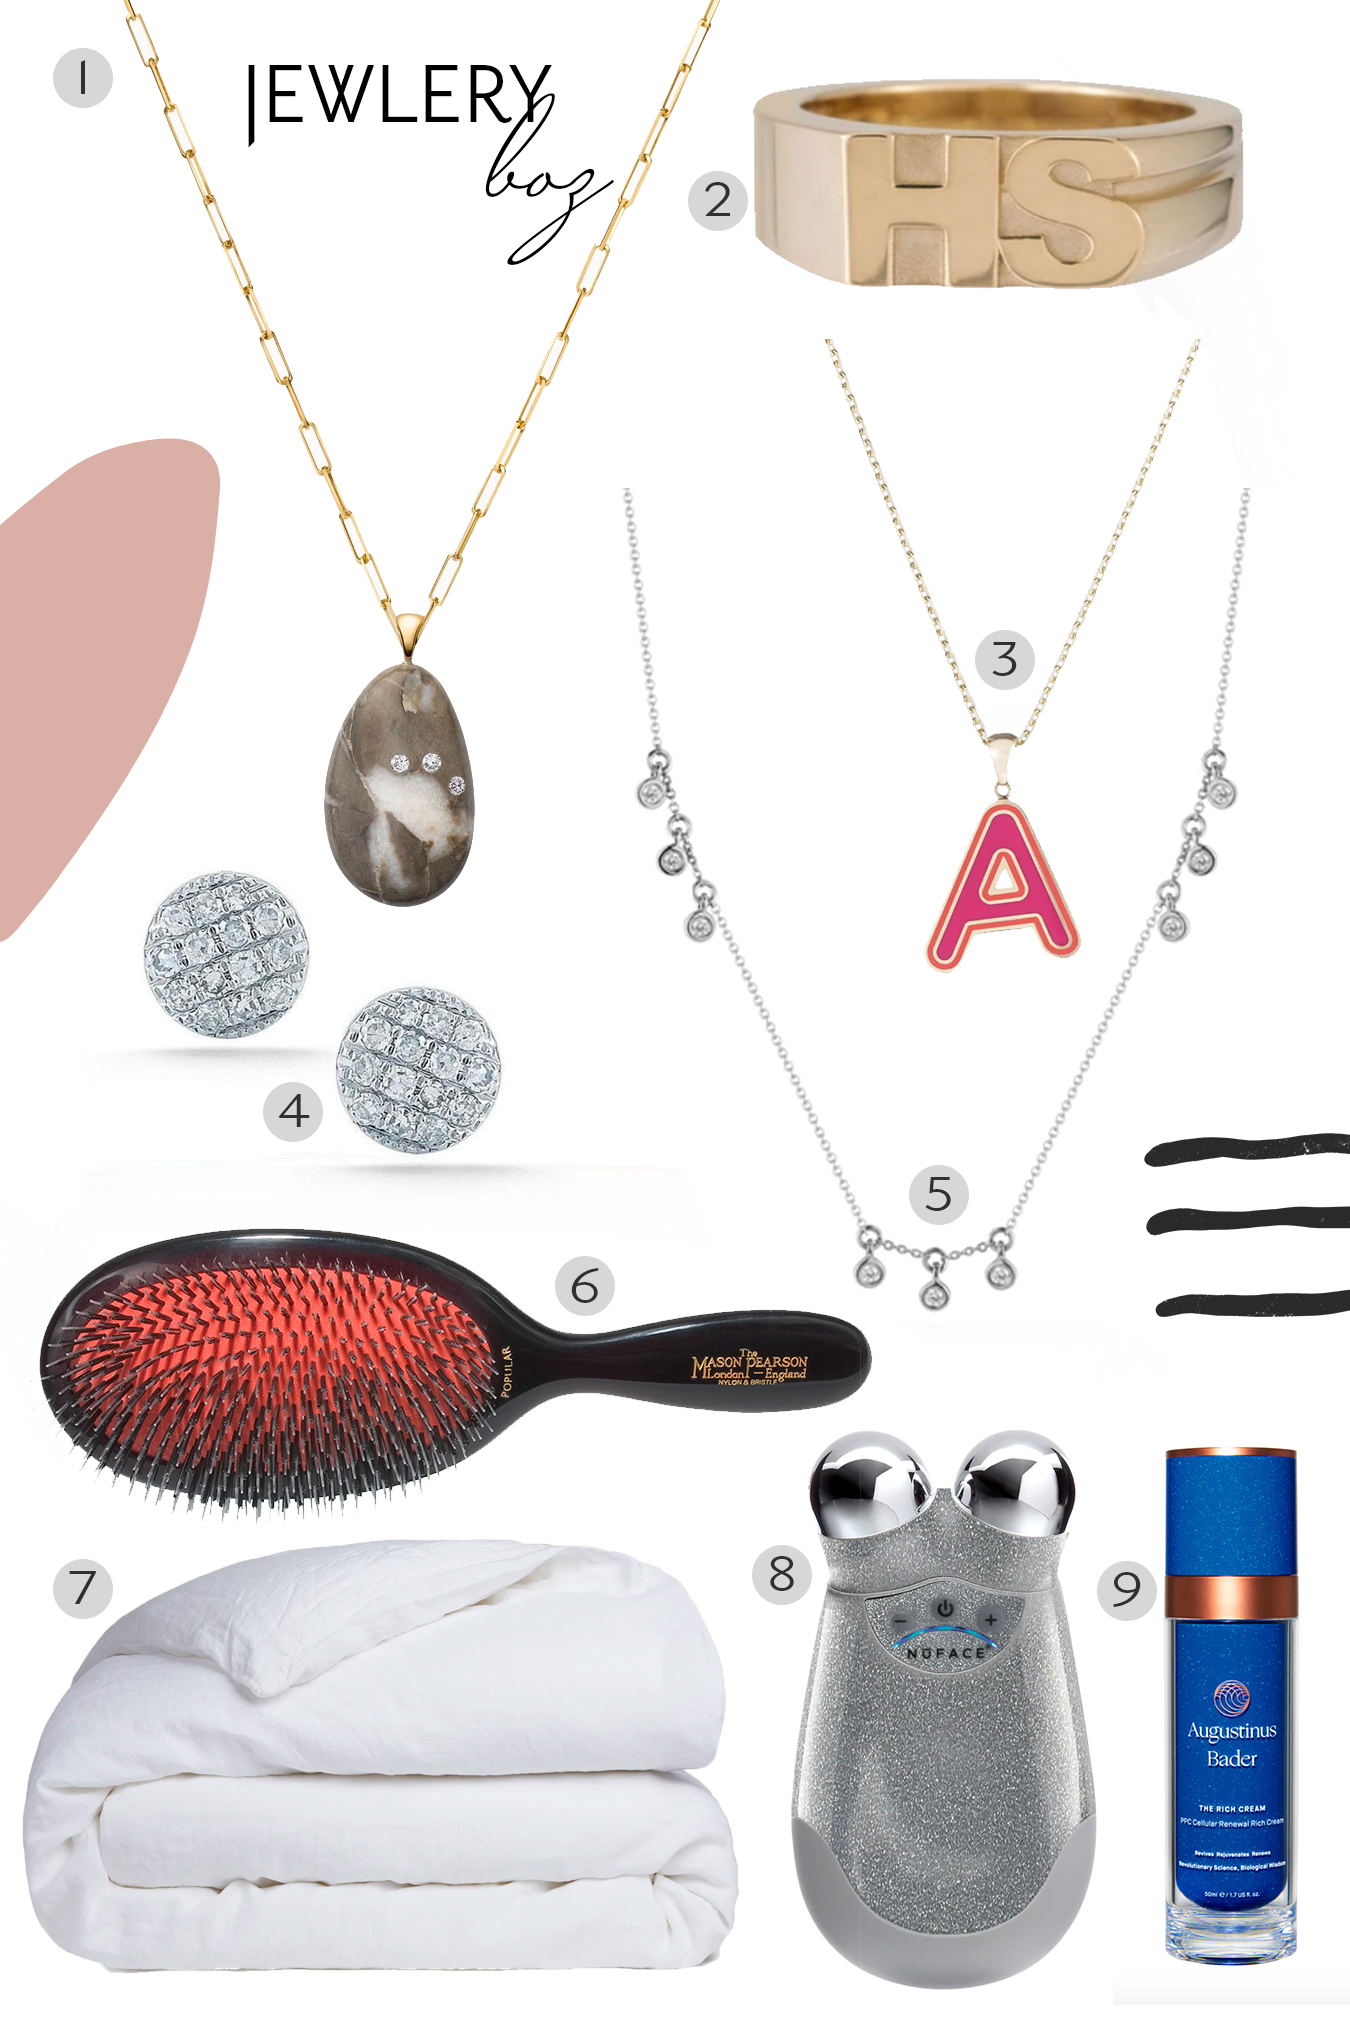 luxurious gifts ideas